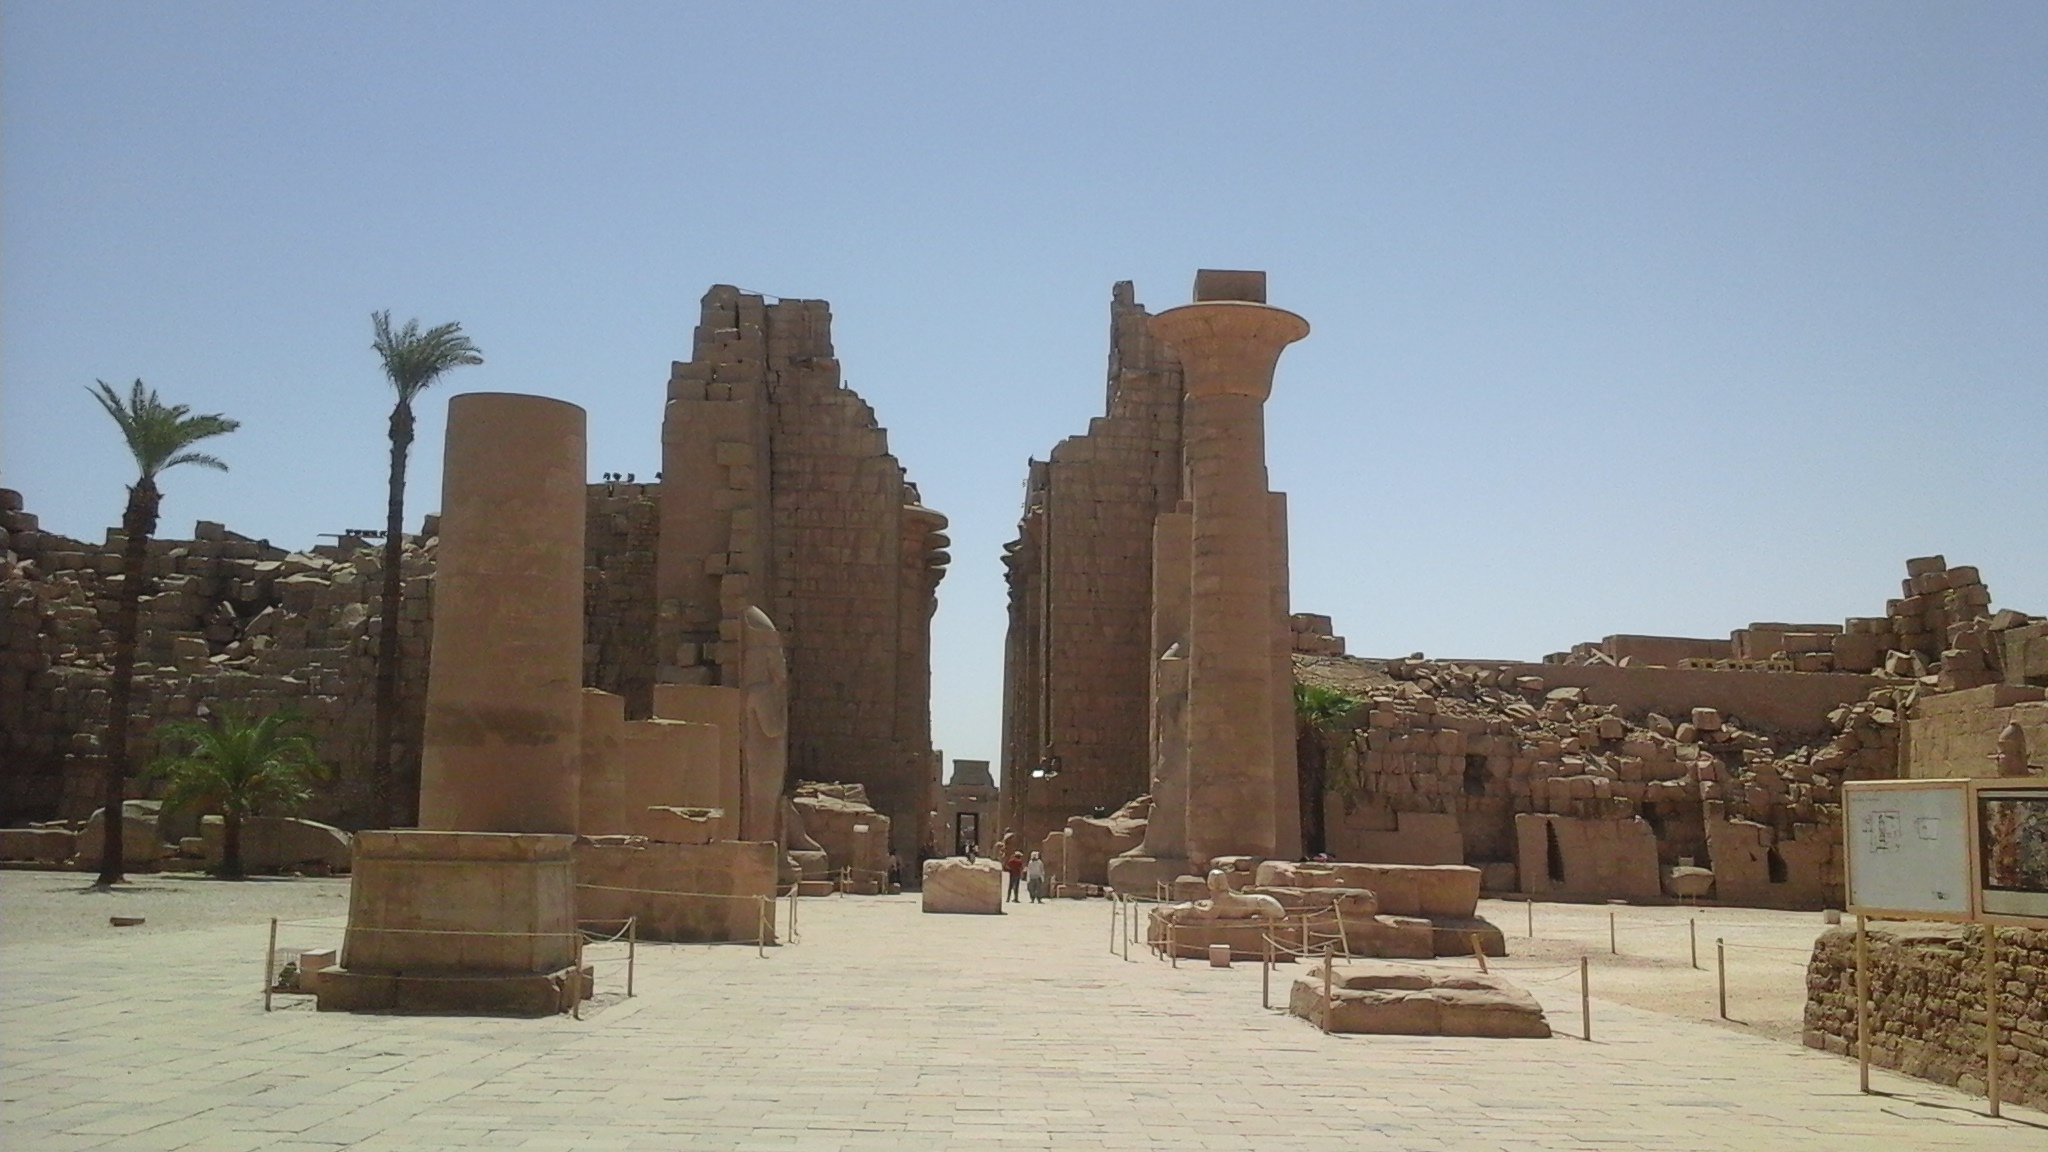 The walls of the second pylon in the temple of Karnak